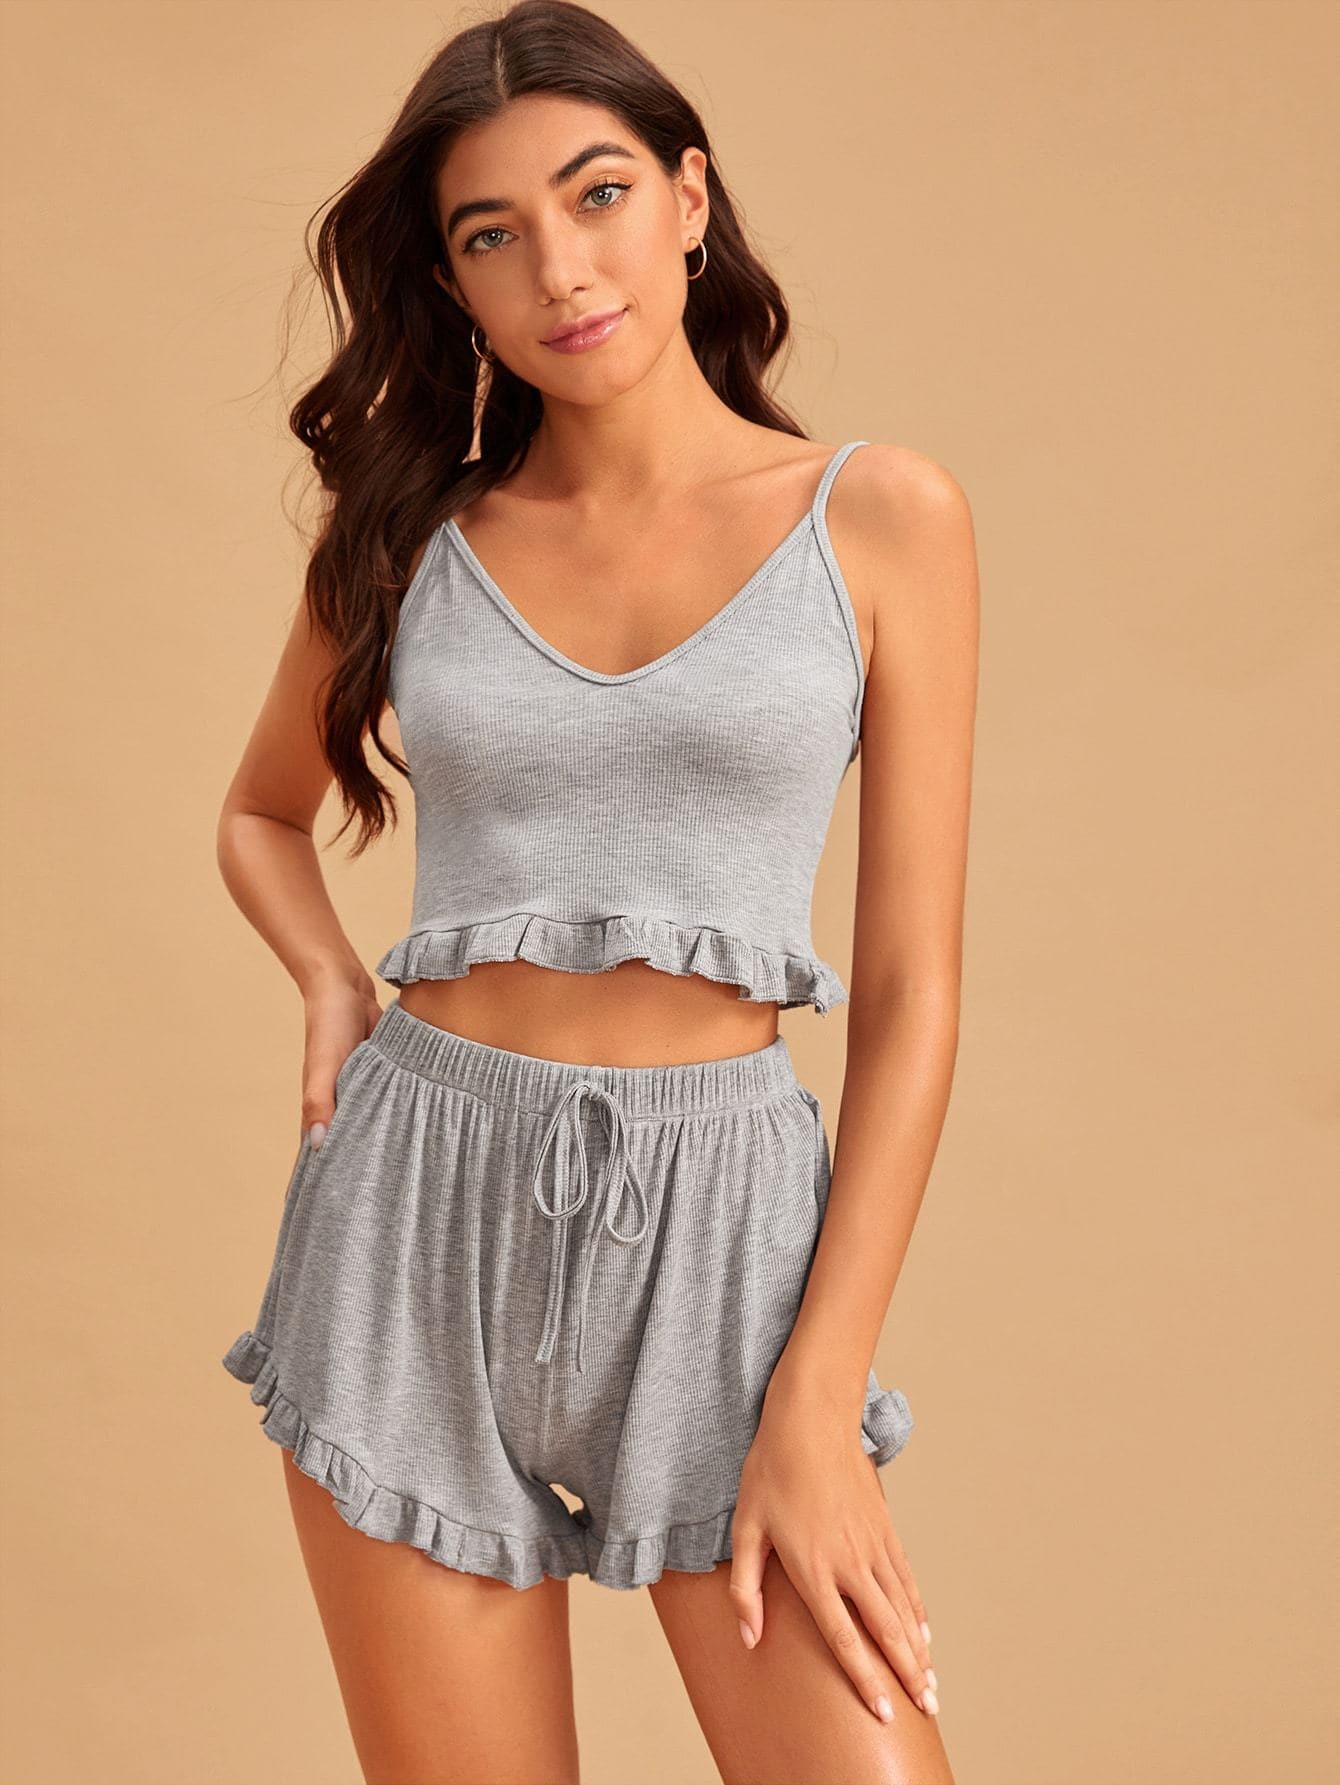 Ruffle Hem Drawstring Waist Rib-knit Cami PJ Set - FLJ CORPORATIONS